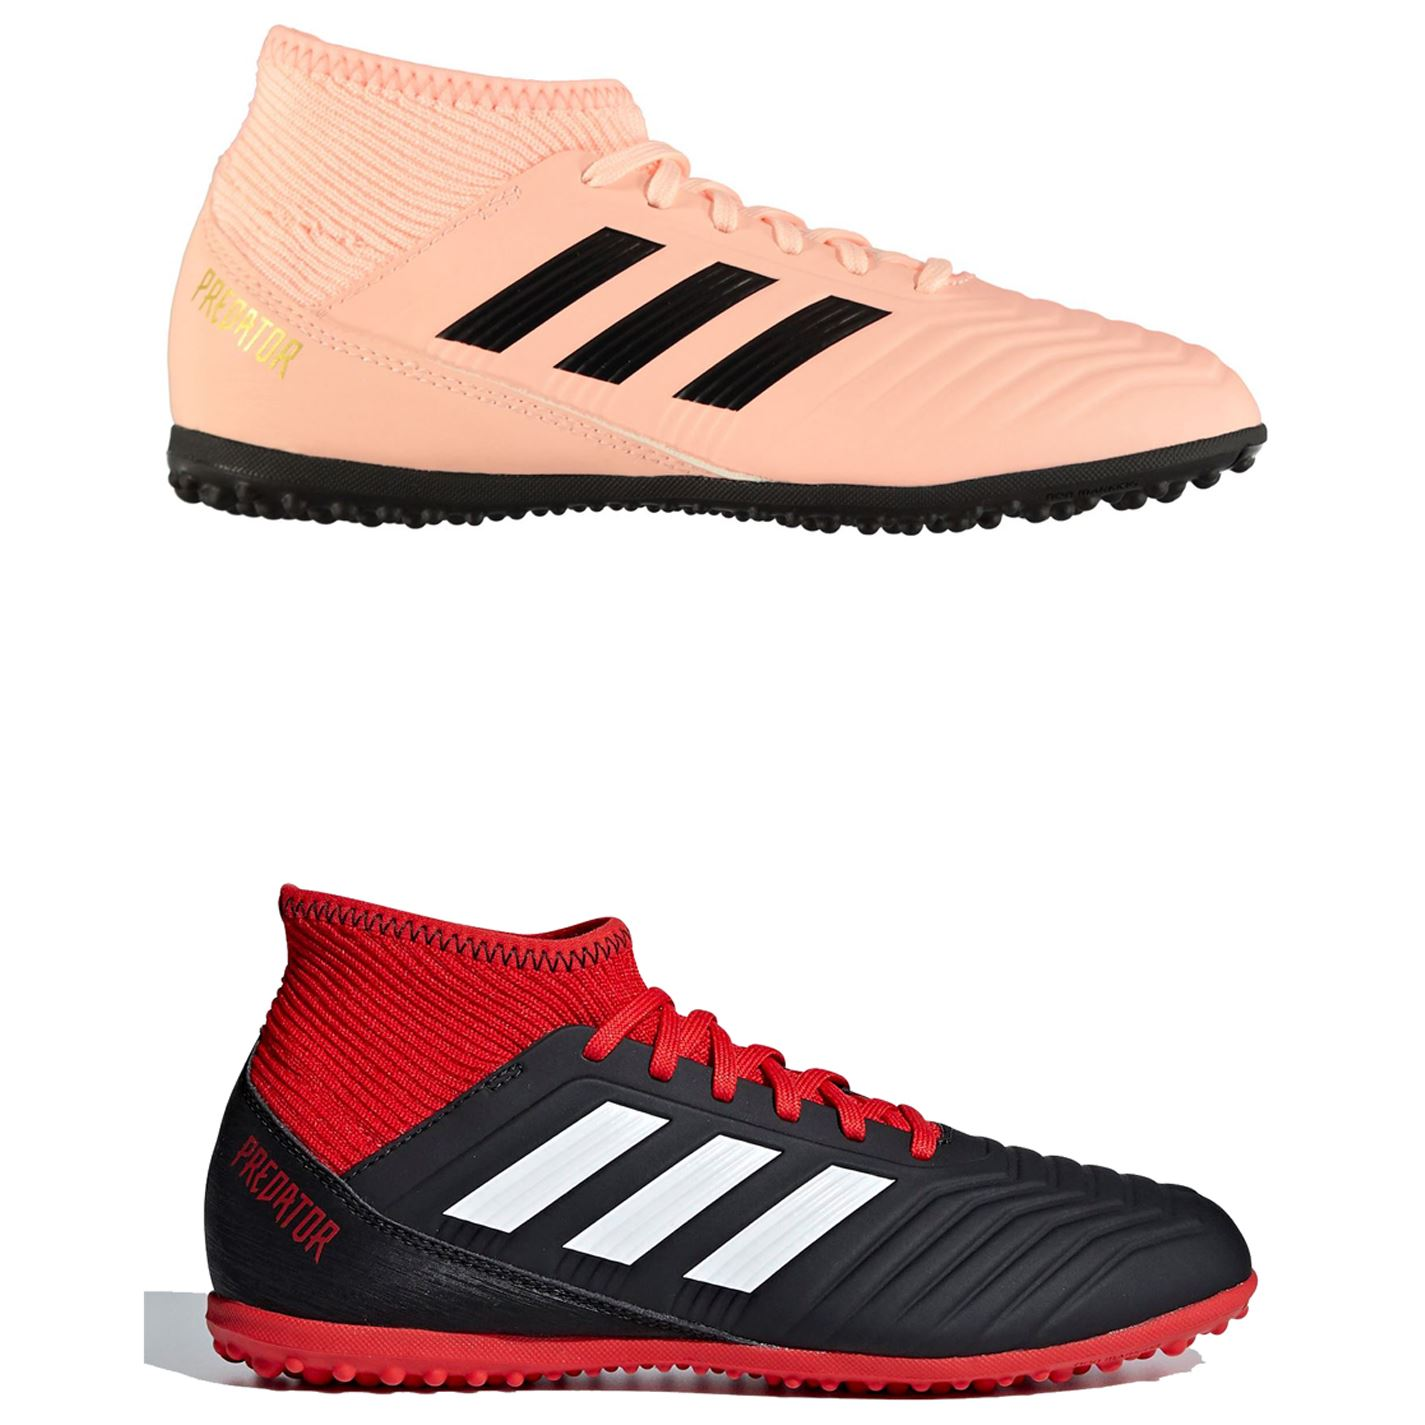 cd963dcf5742 ... adidas Predator Tango 18.3 Astro Turf Football Trainers Childs Soccer  Shoes ...